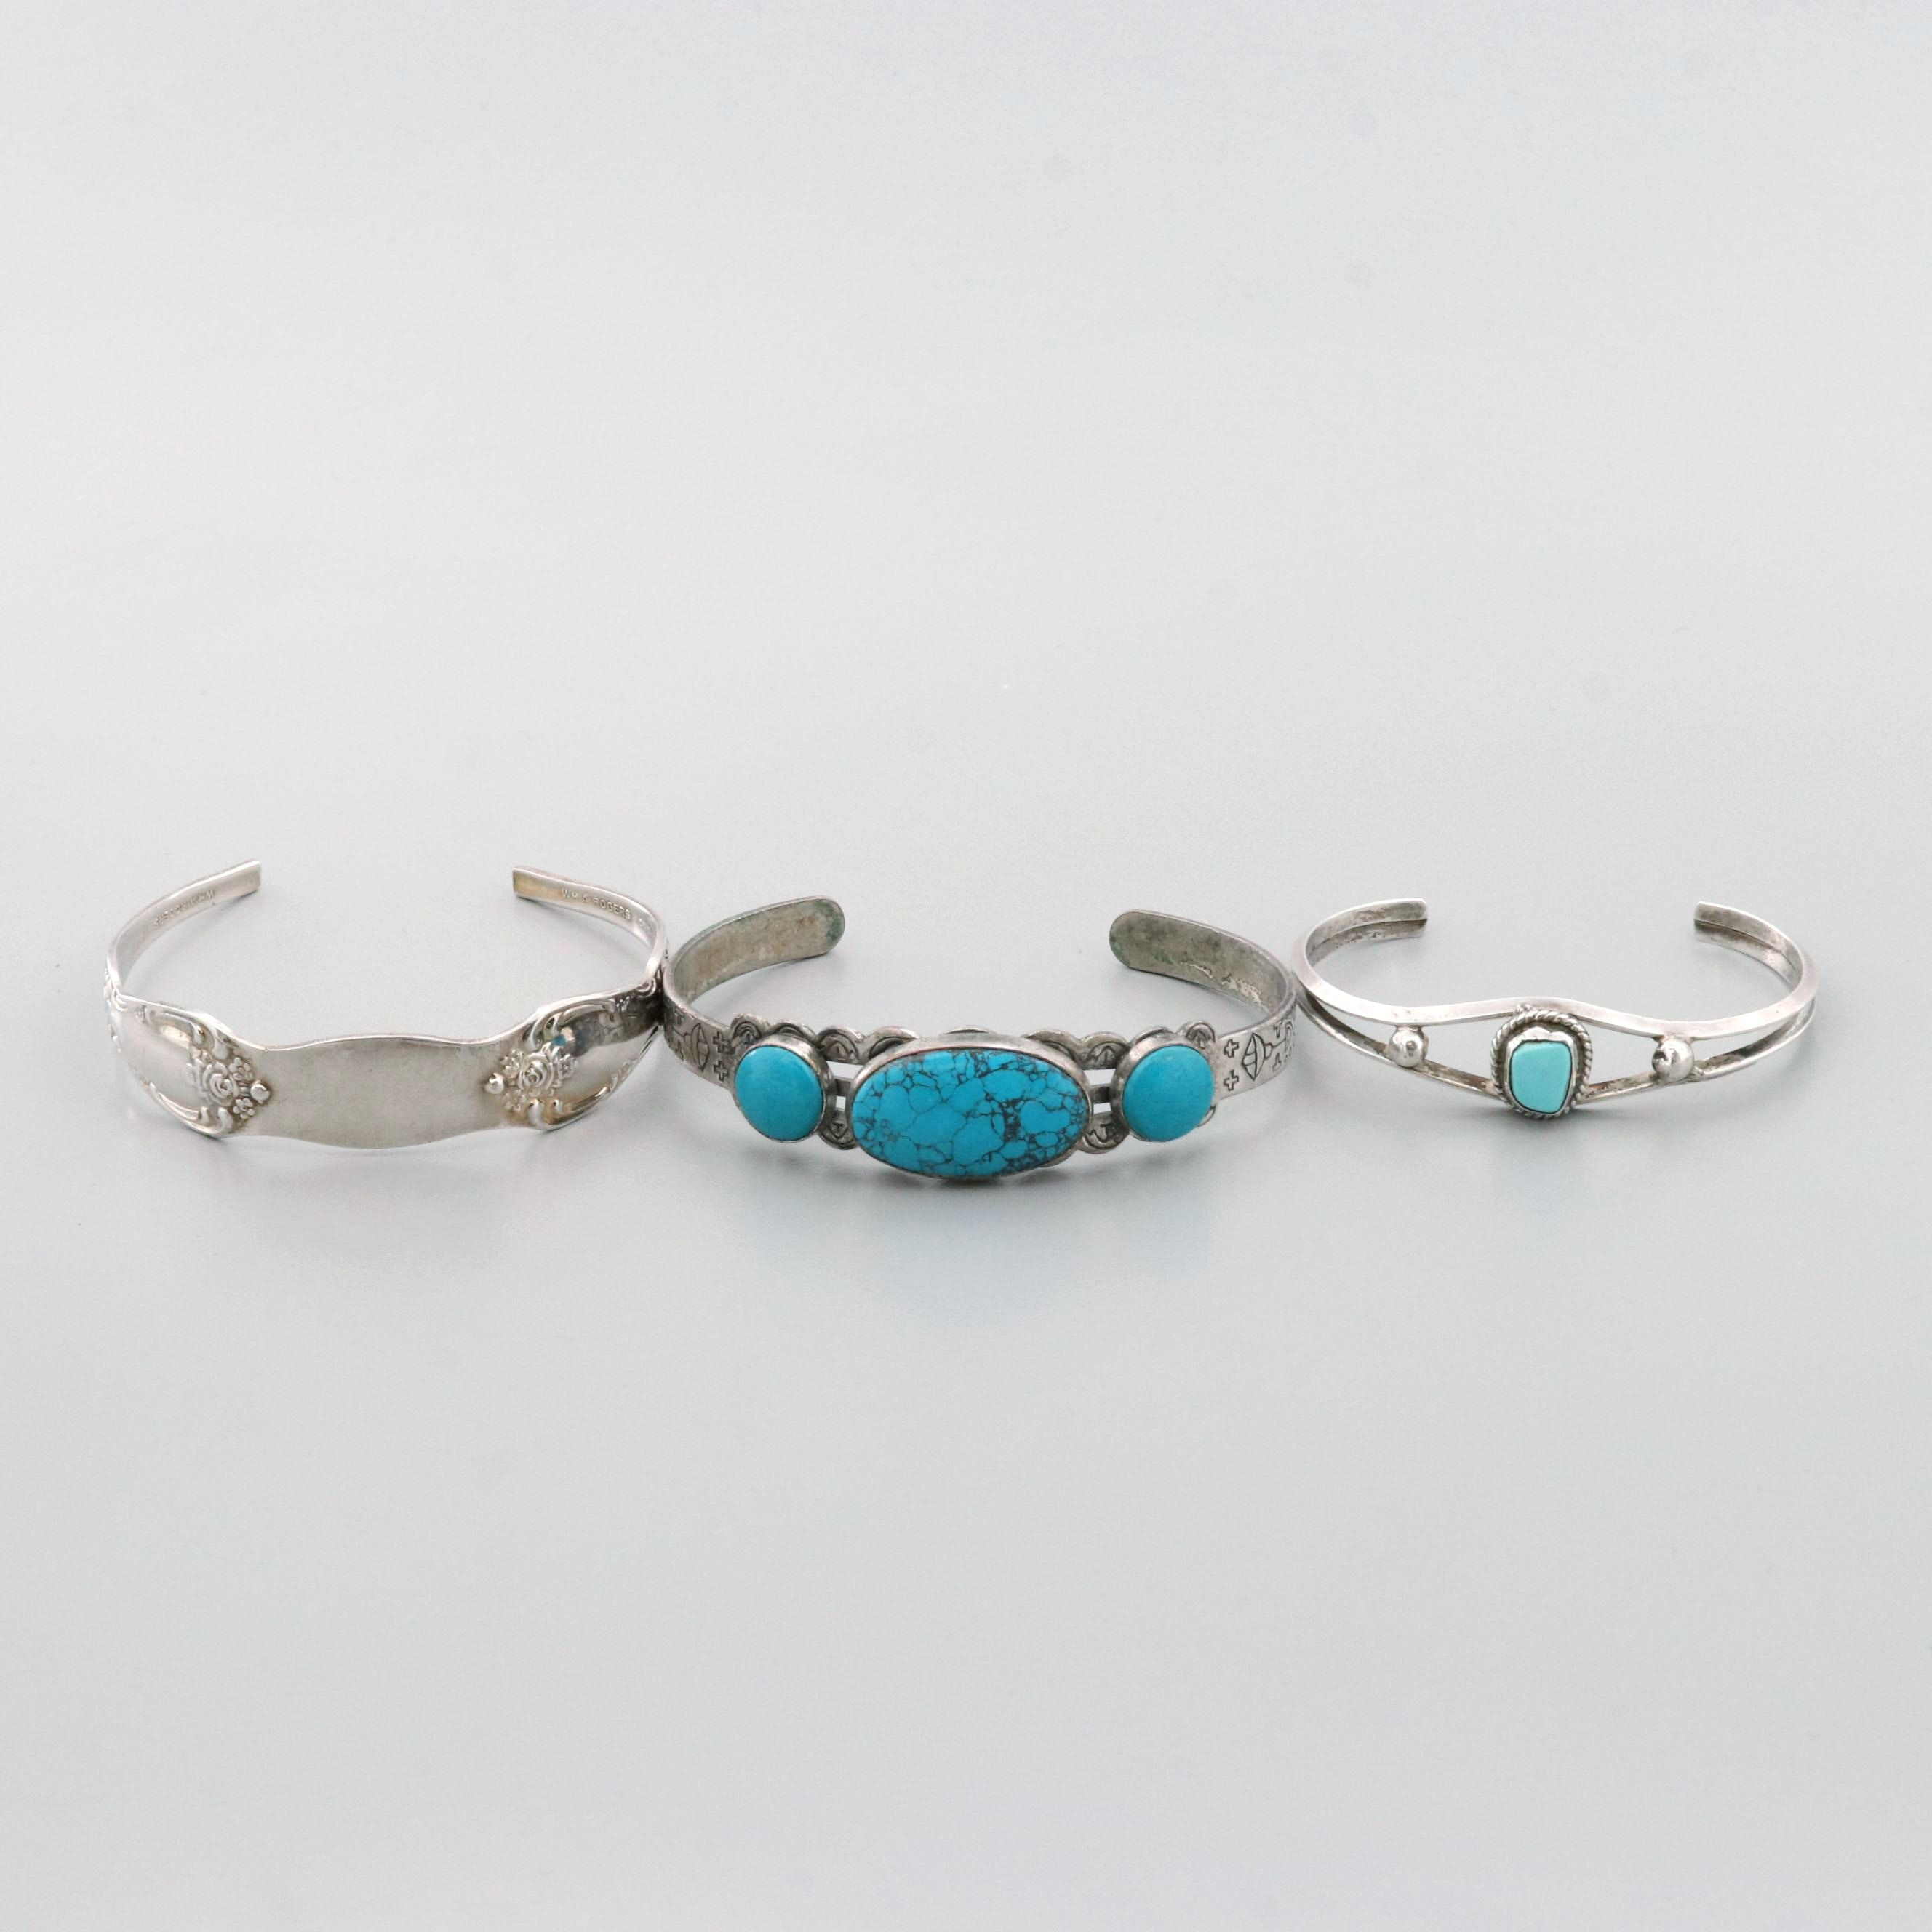 Sterling Silver and Silver Tone Imitation Turquoise and Turquoise Cuff Bracelets